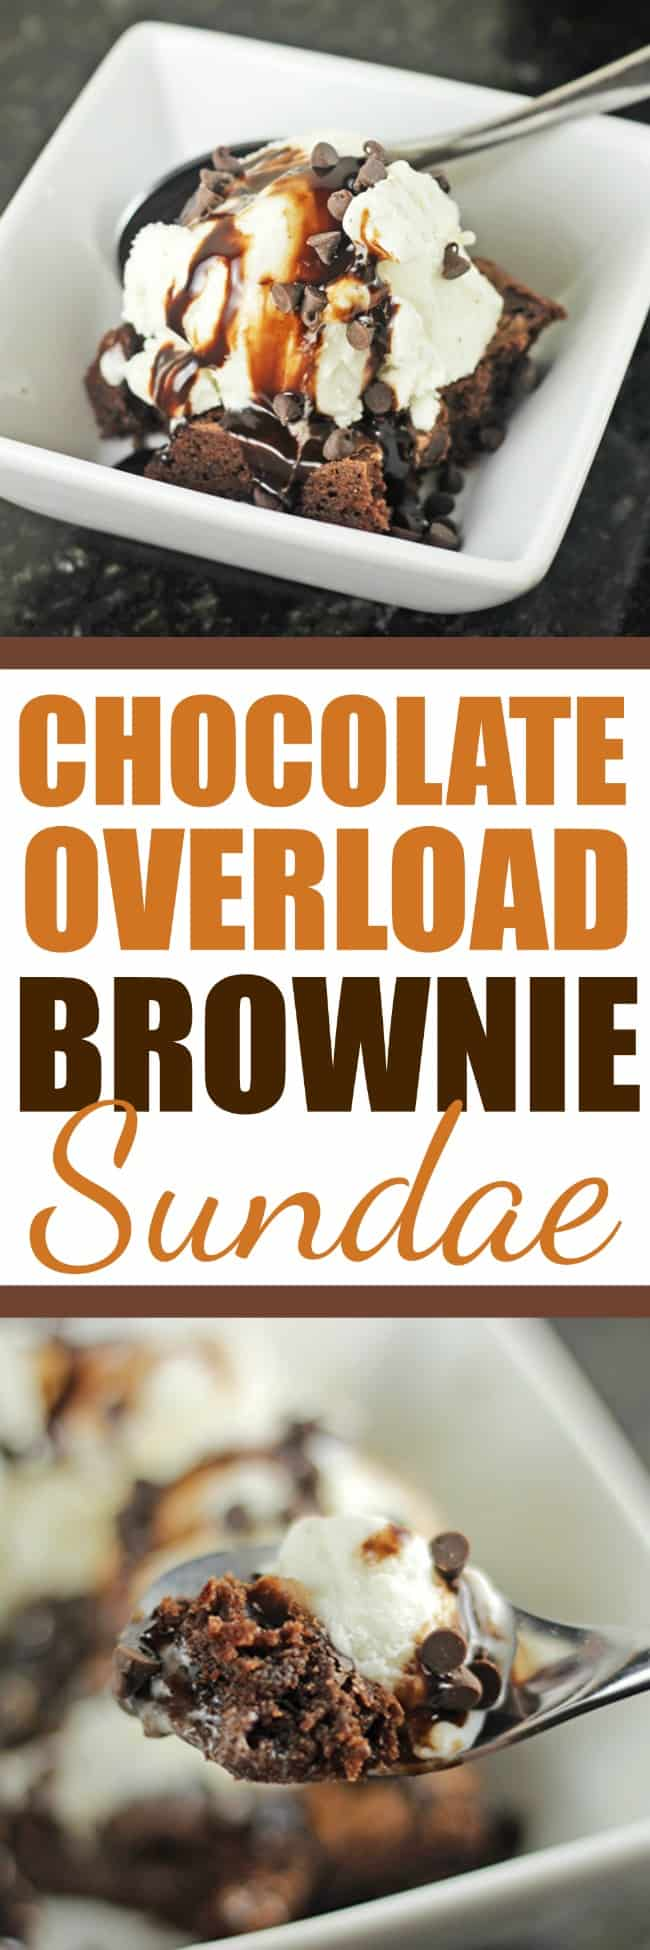 Chocolate Overload Brownie Sundae RoseBakes #ad #mixinmoments #CollectiveBias